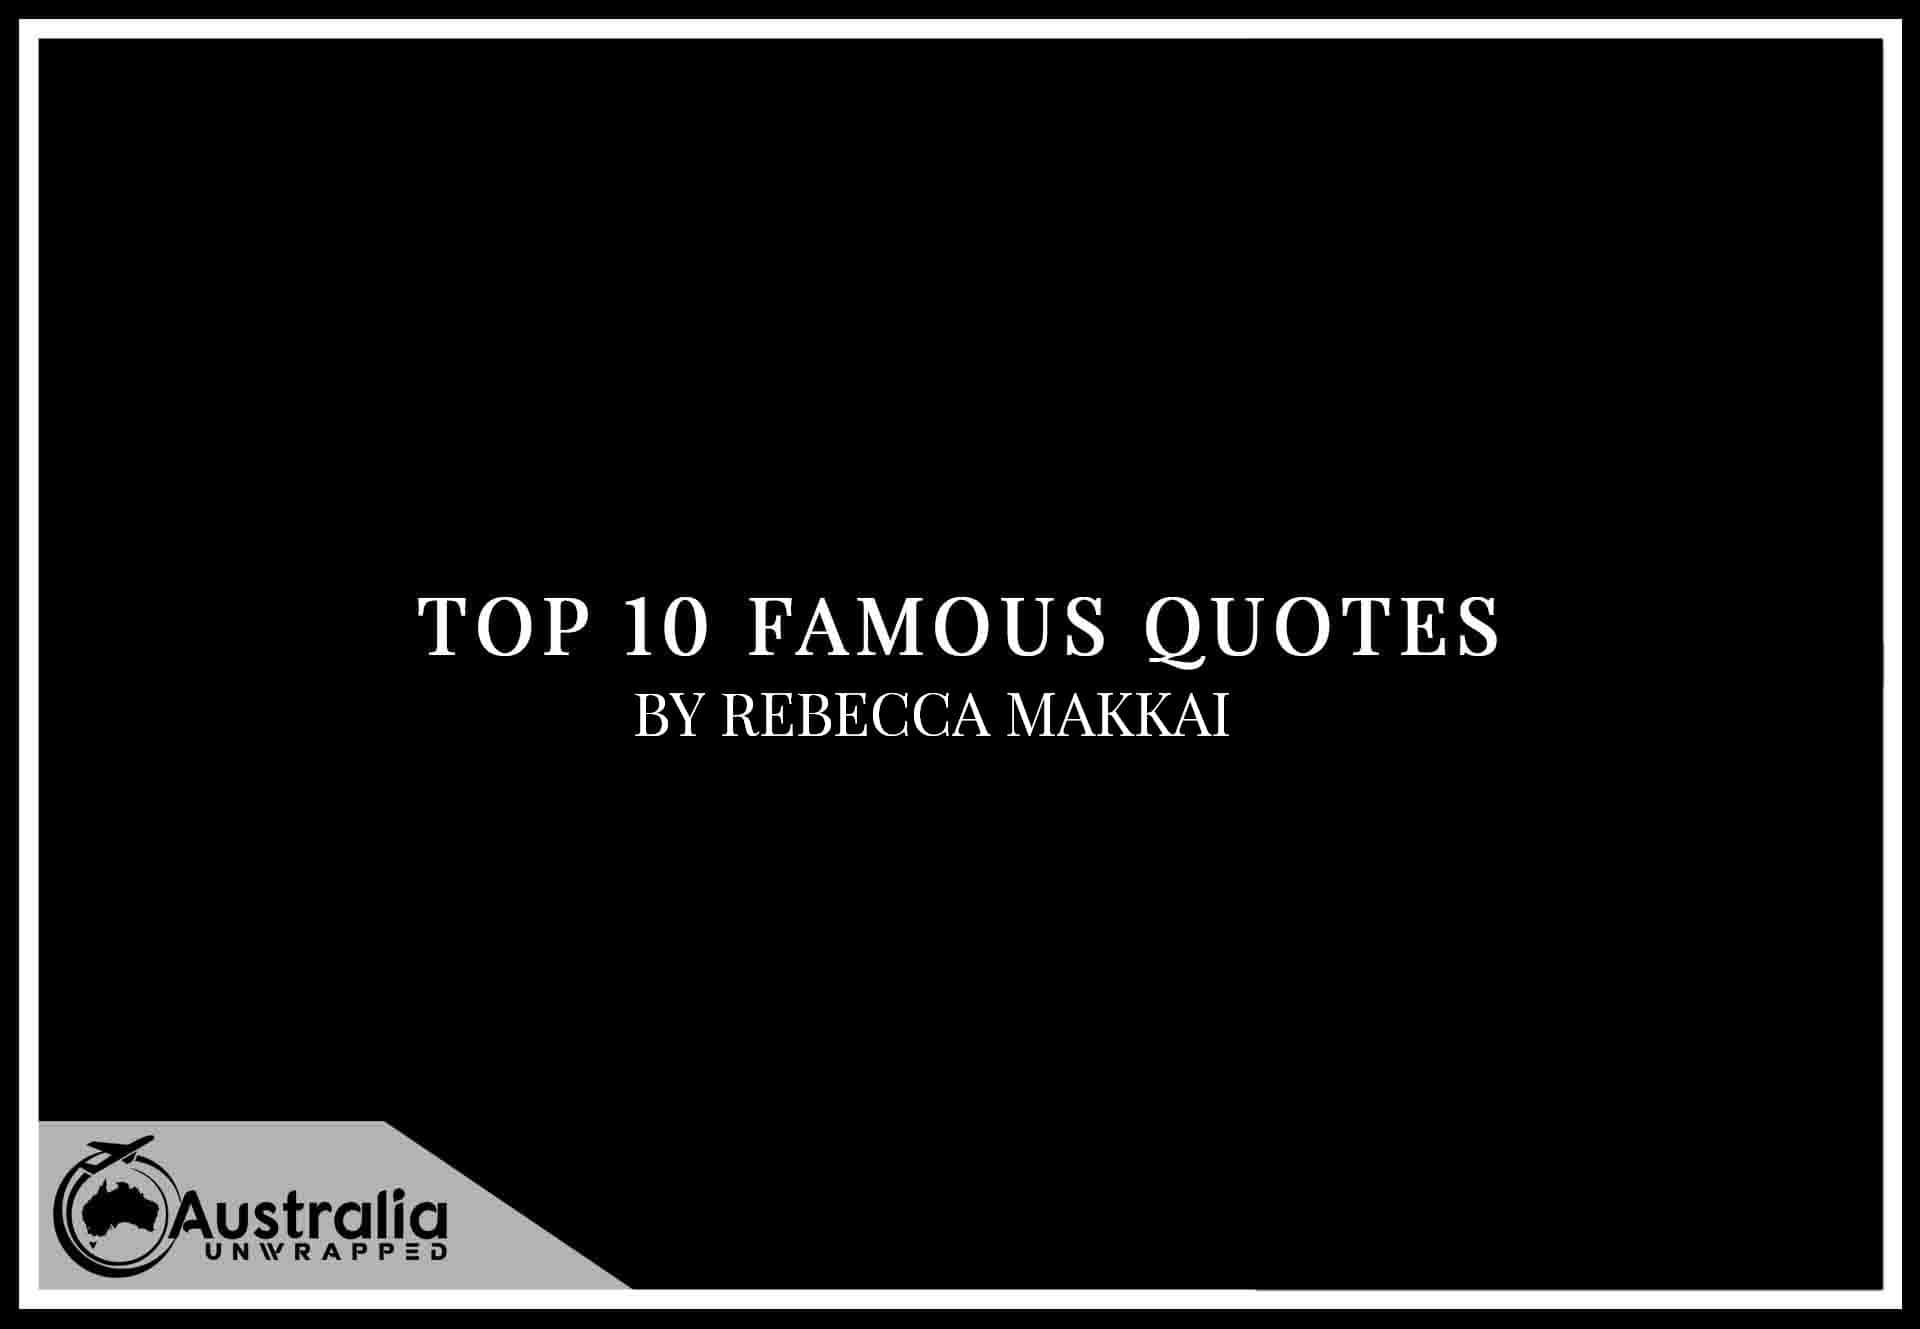 Top 10 Famous Quotes by Author Rebecca Makkai